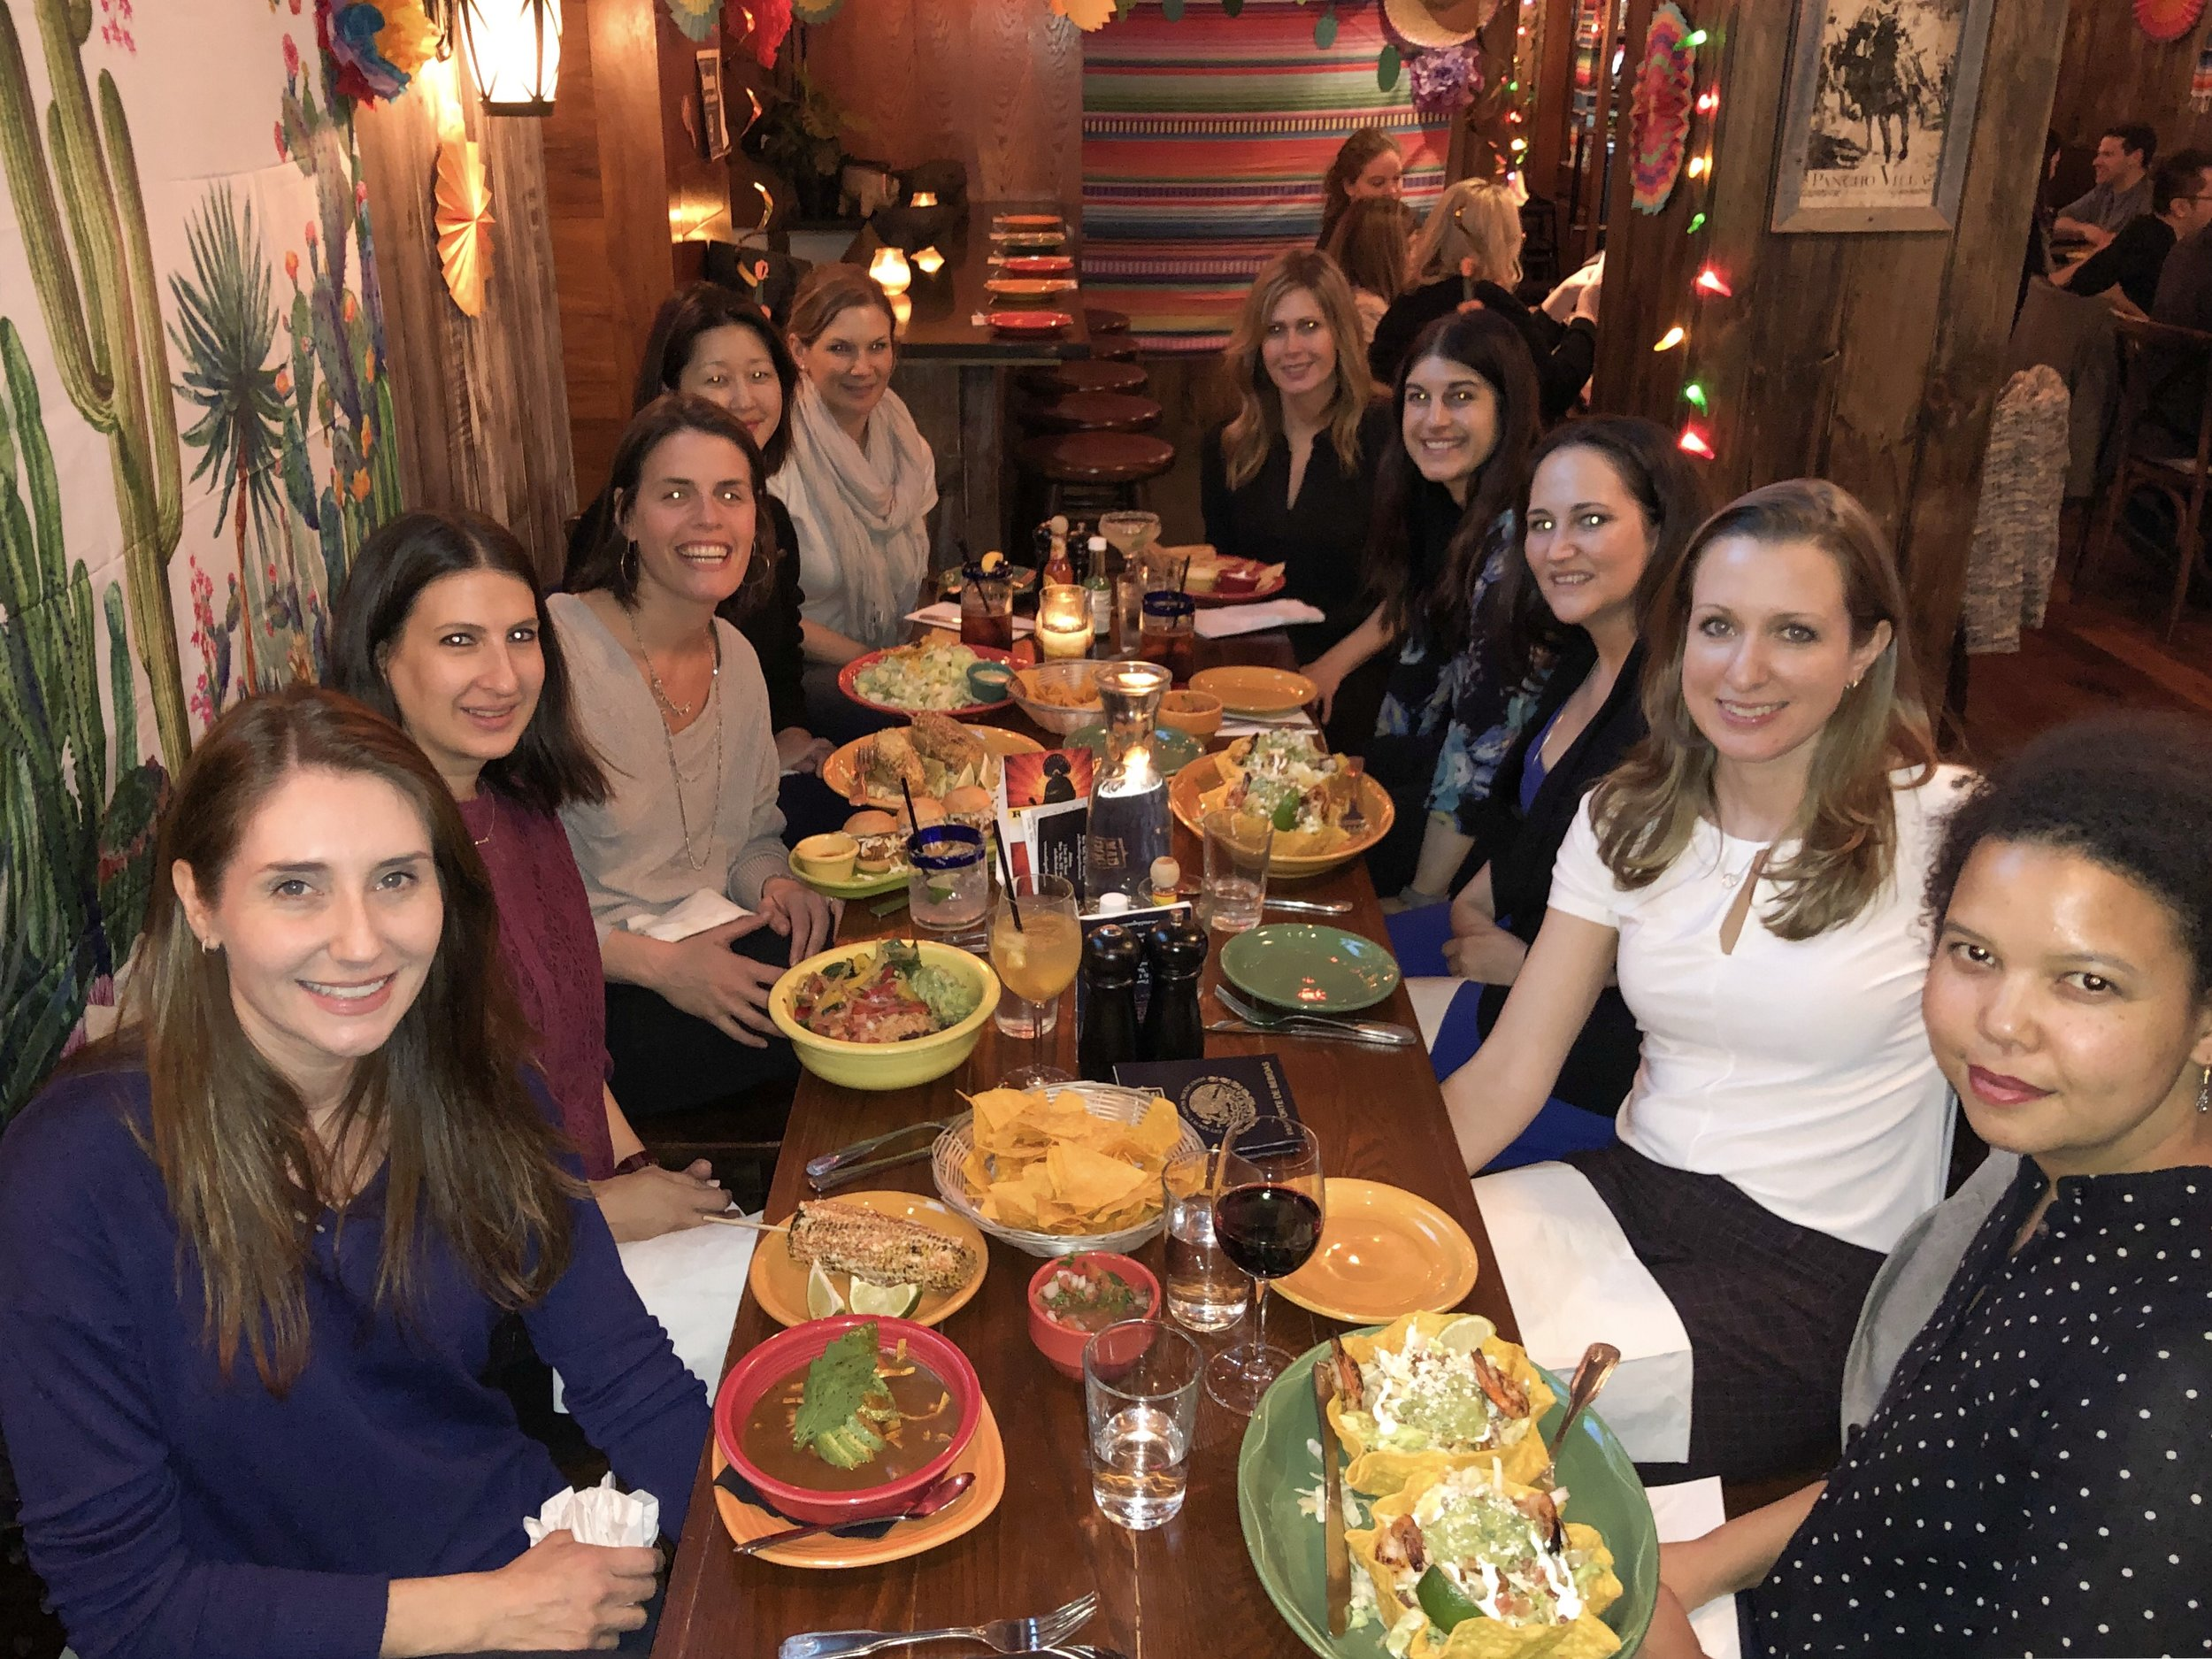 Working Moms Lunch - Who says that working moms have to miss out on the midday fun? Come to our monthly Friday lunches to connect with other moms who are back to work full-time.